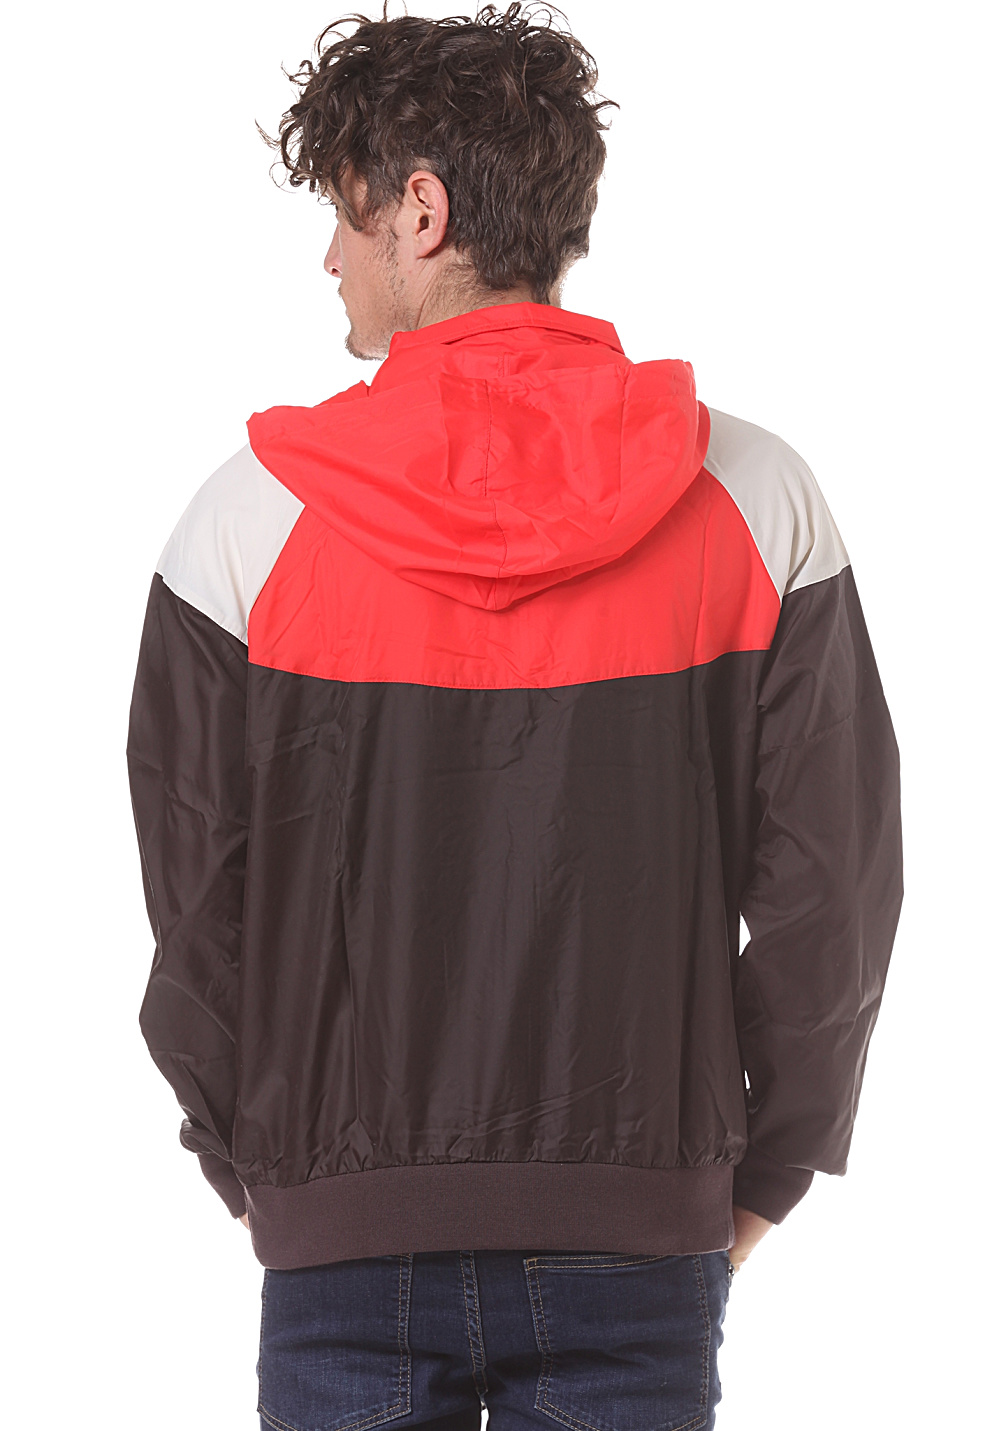 Next. This product is currently out of stock. NIKE SPORTSWEAR. RU Heritage  Windrunner - Jacket for Men. €79.95 3f85adeb3